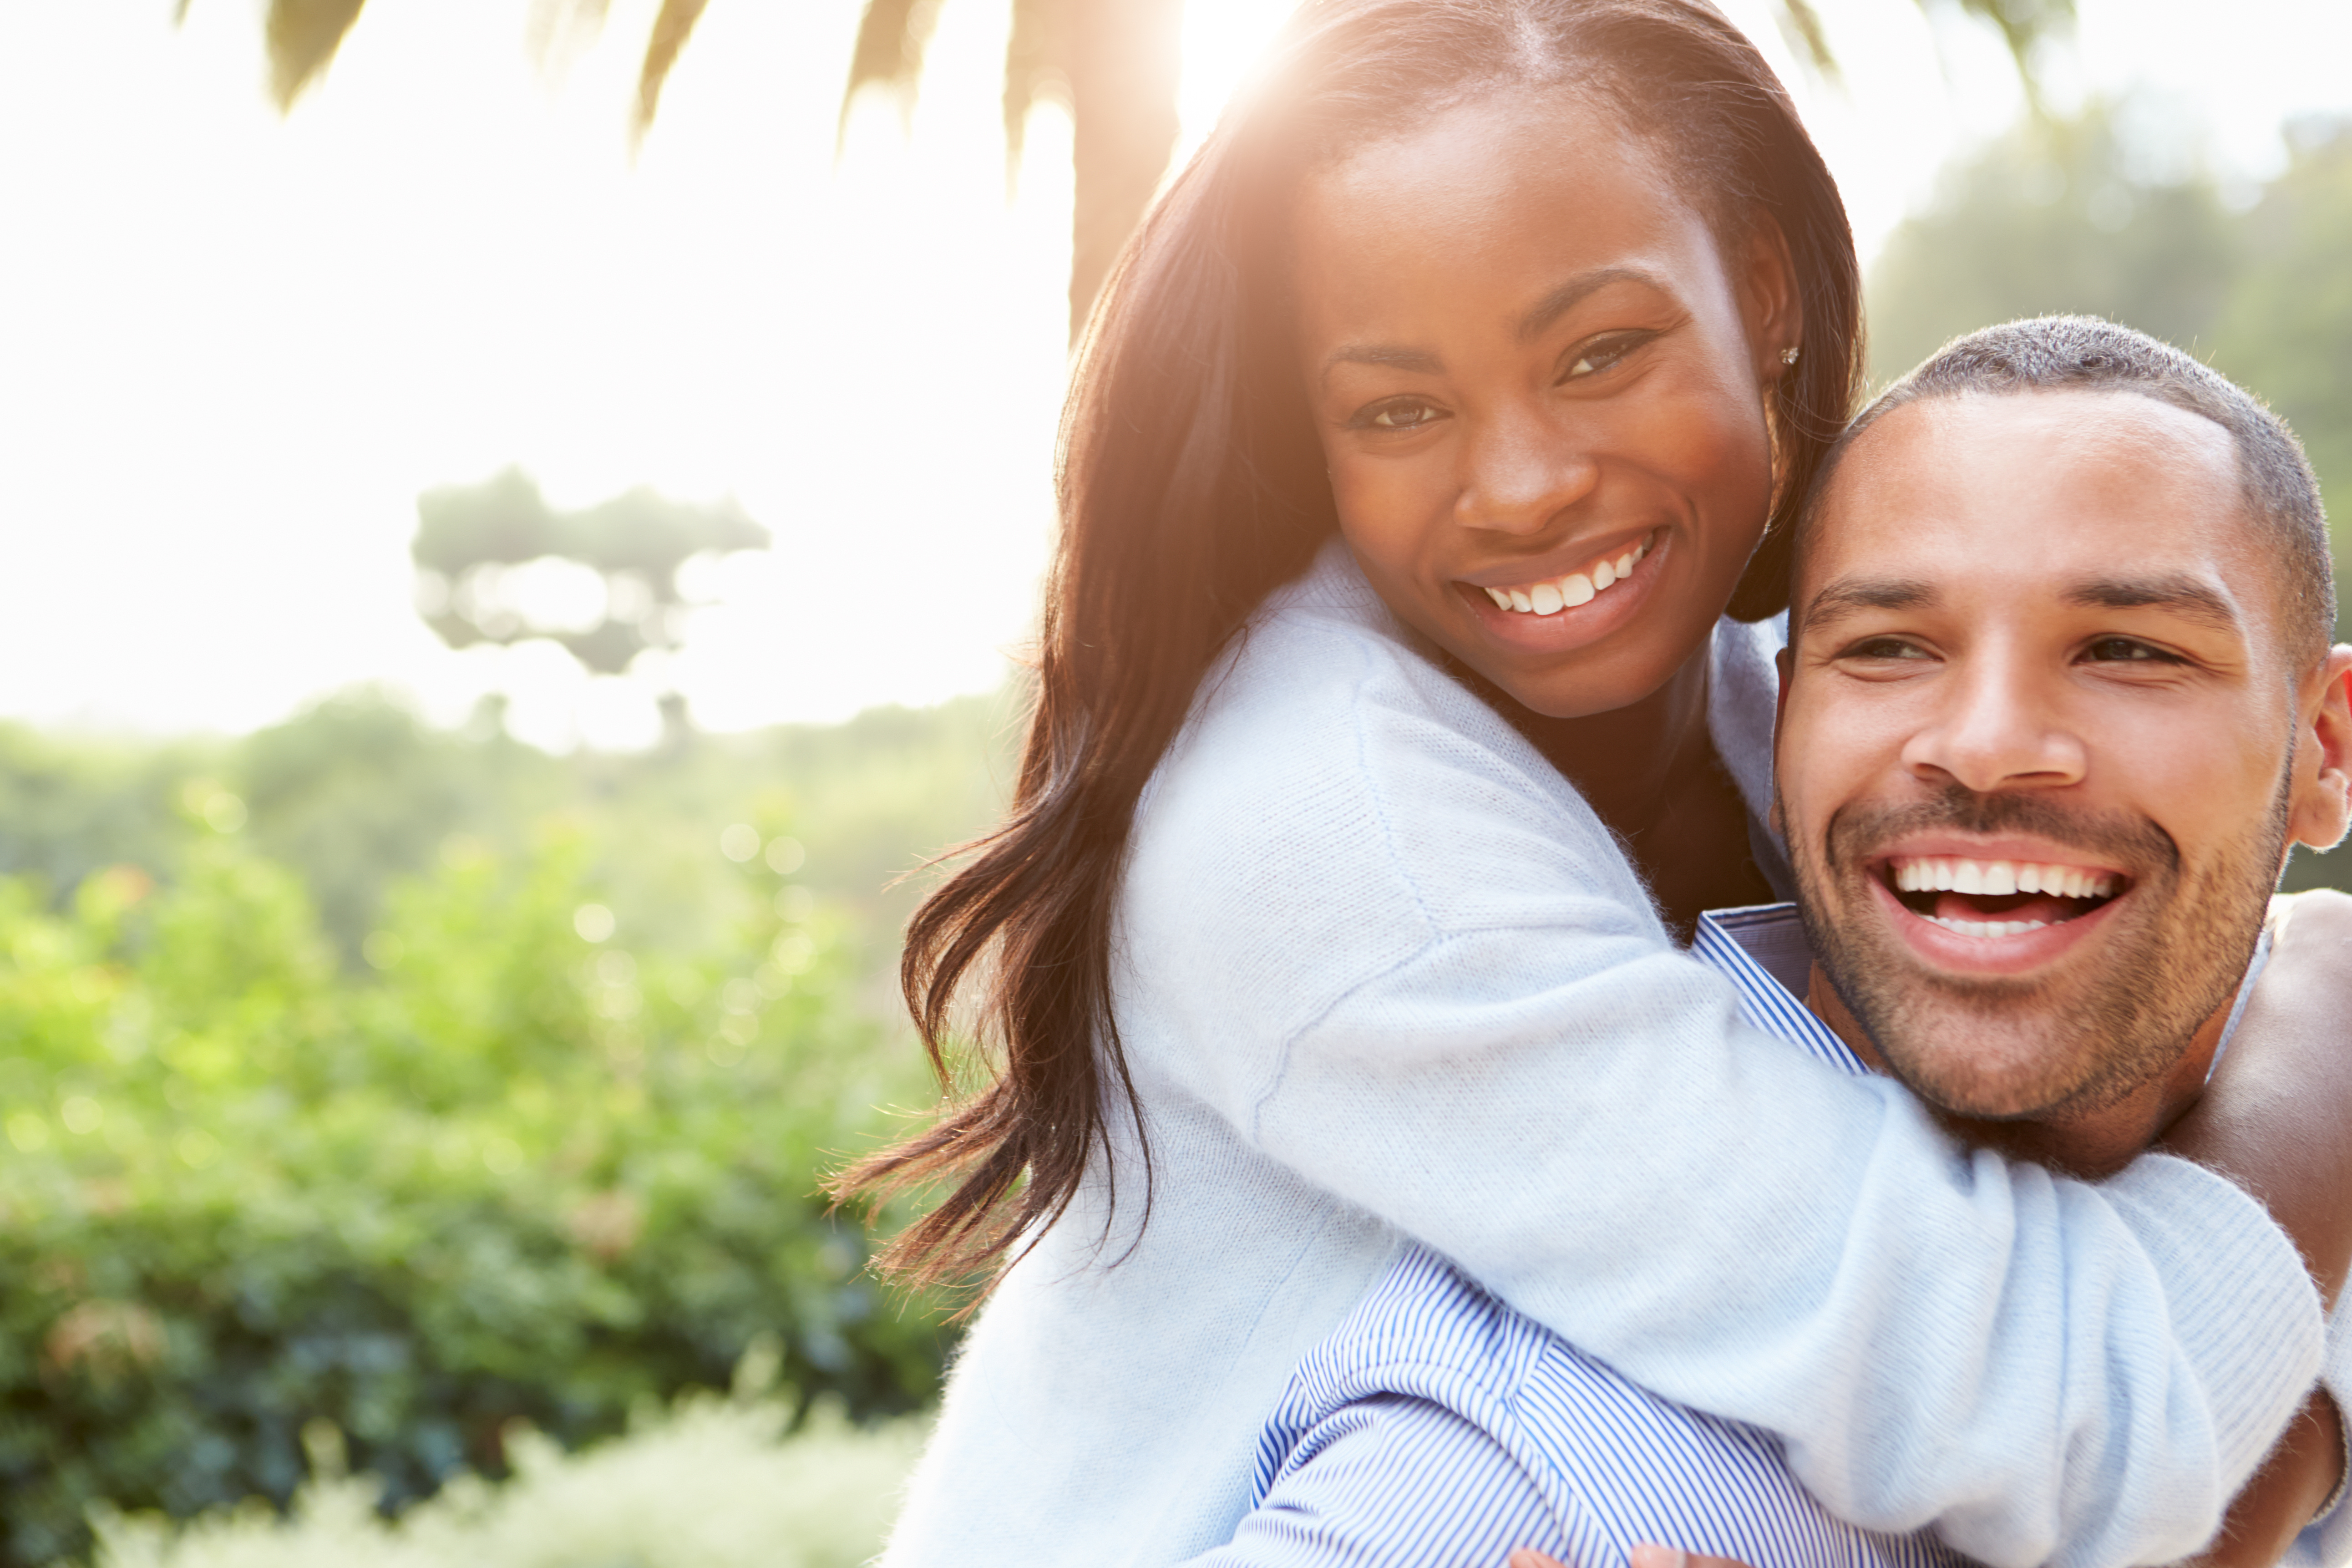 Watch The 5 Rules For A Happy Relationship video